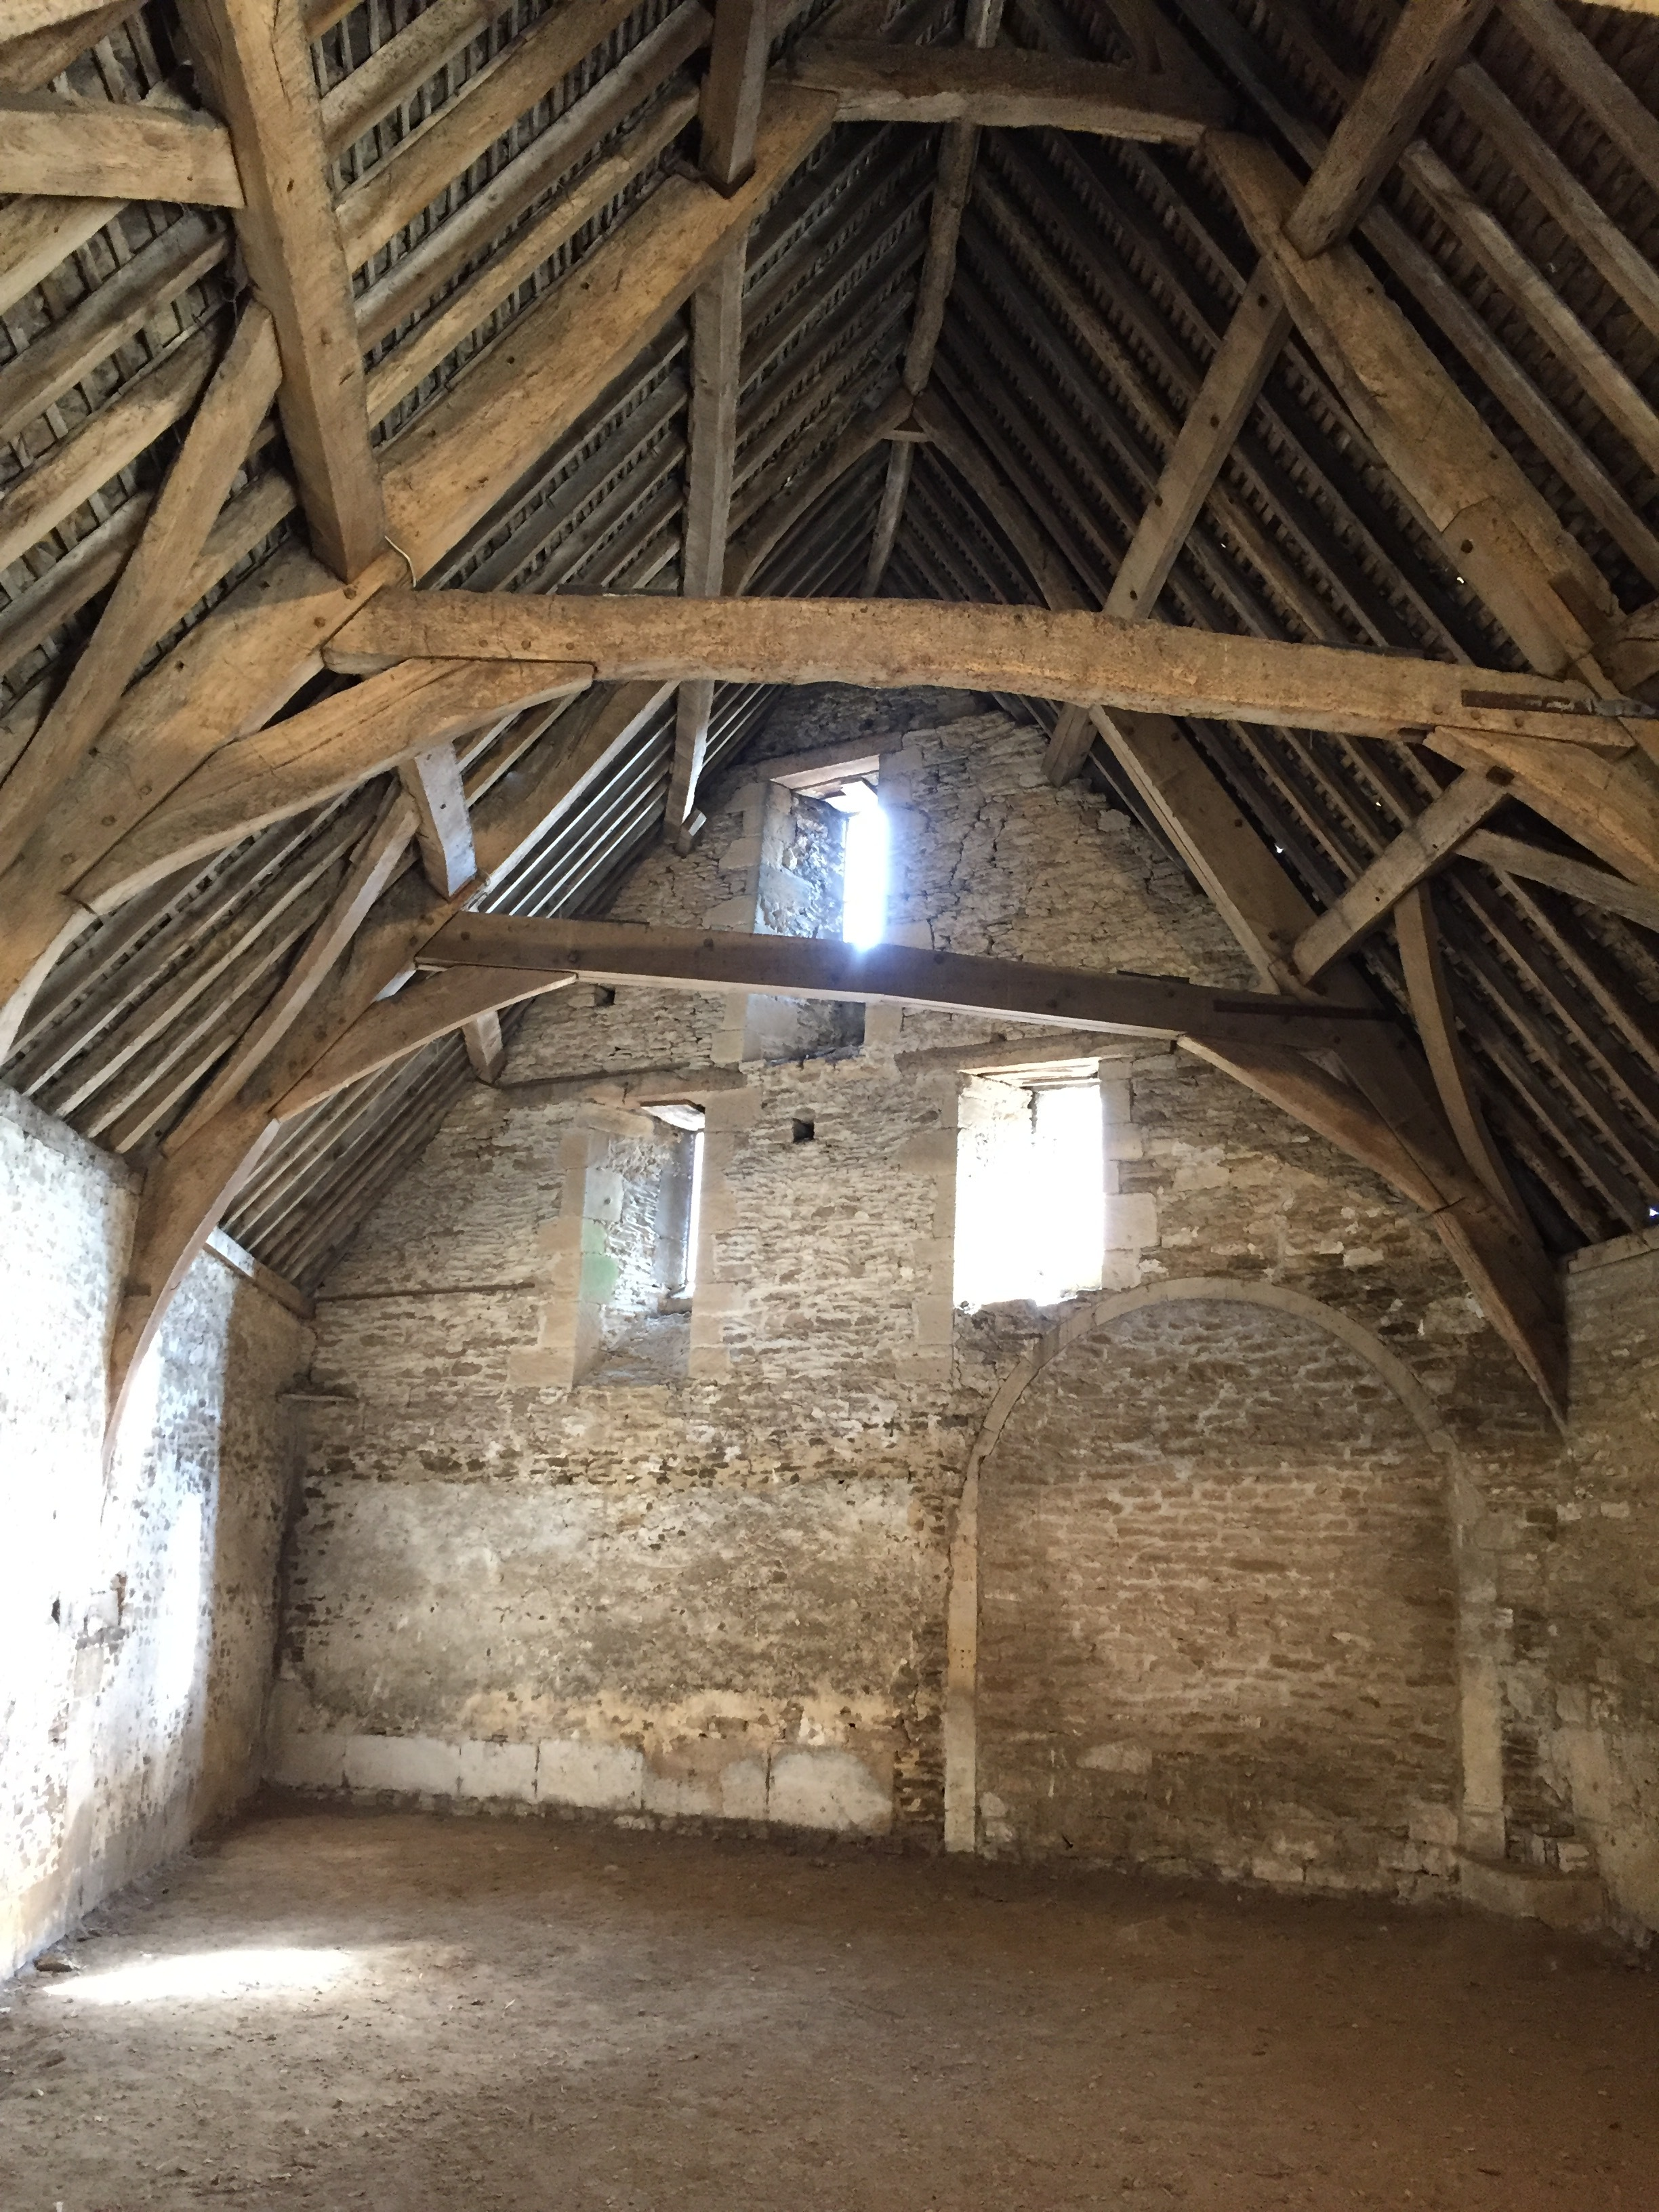 An interior glimpse of a tithe barn in Wiltshire, England.